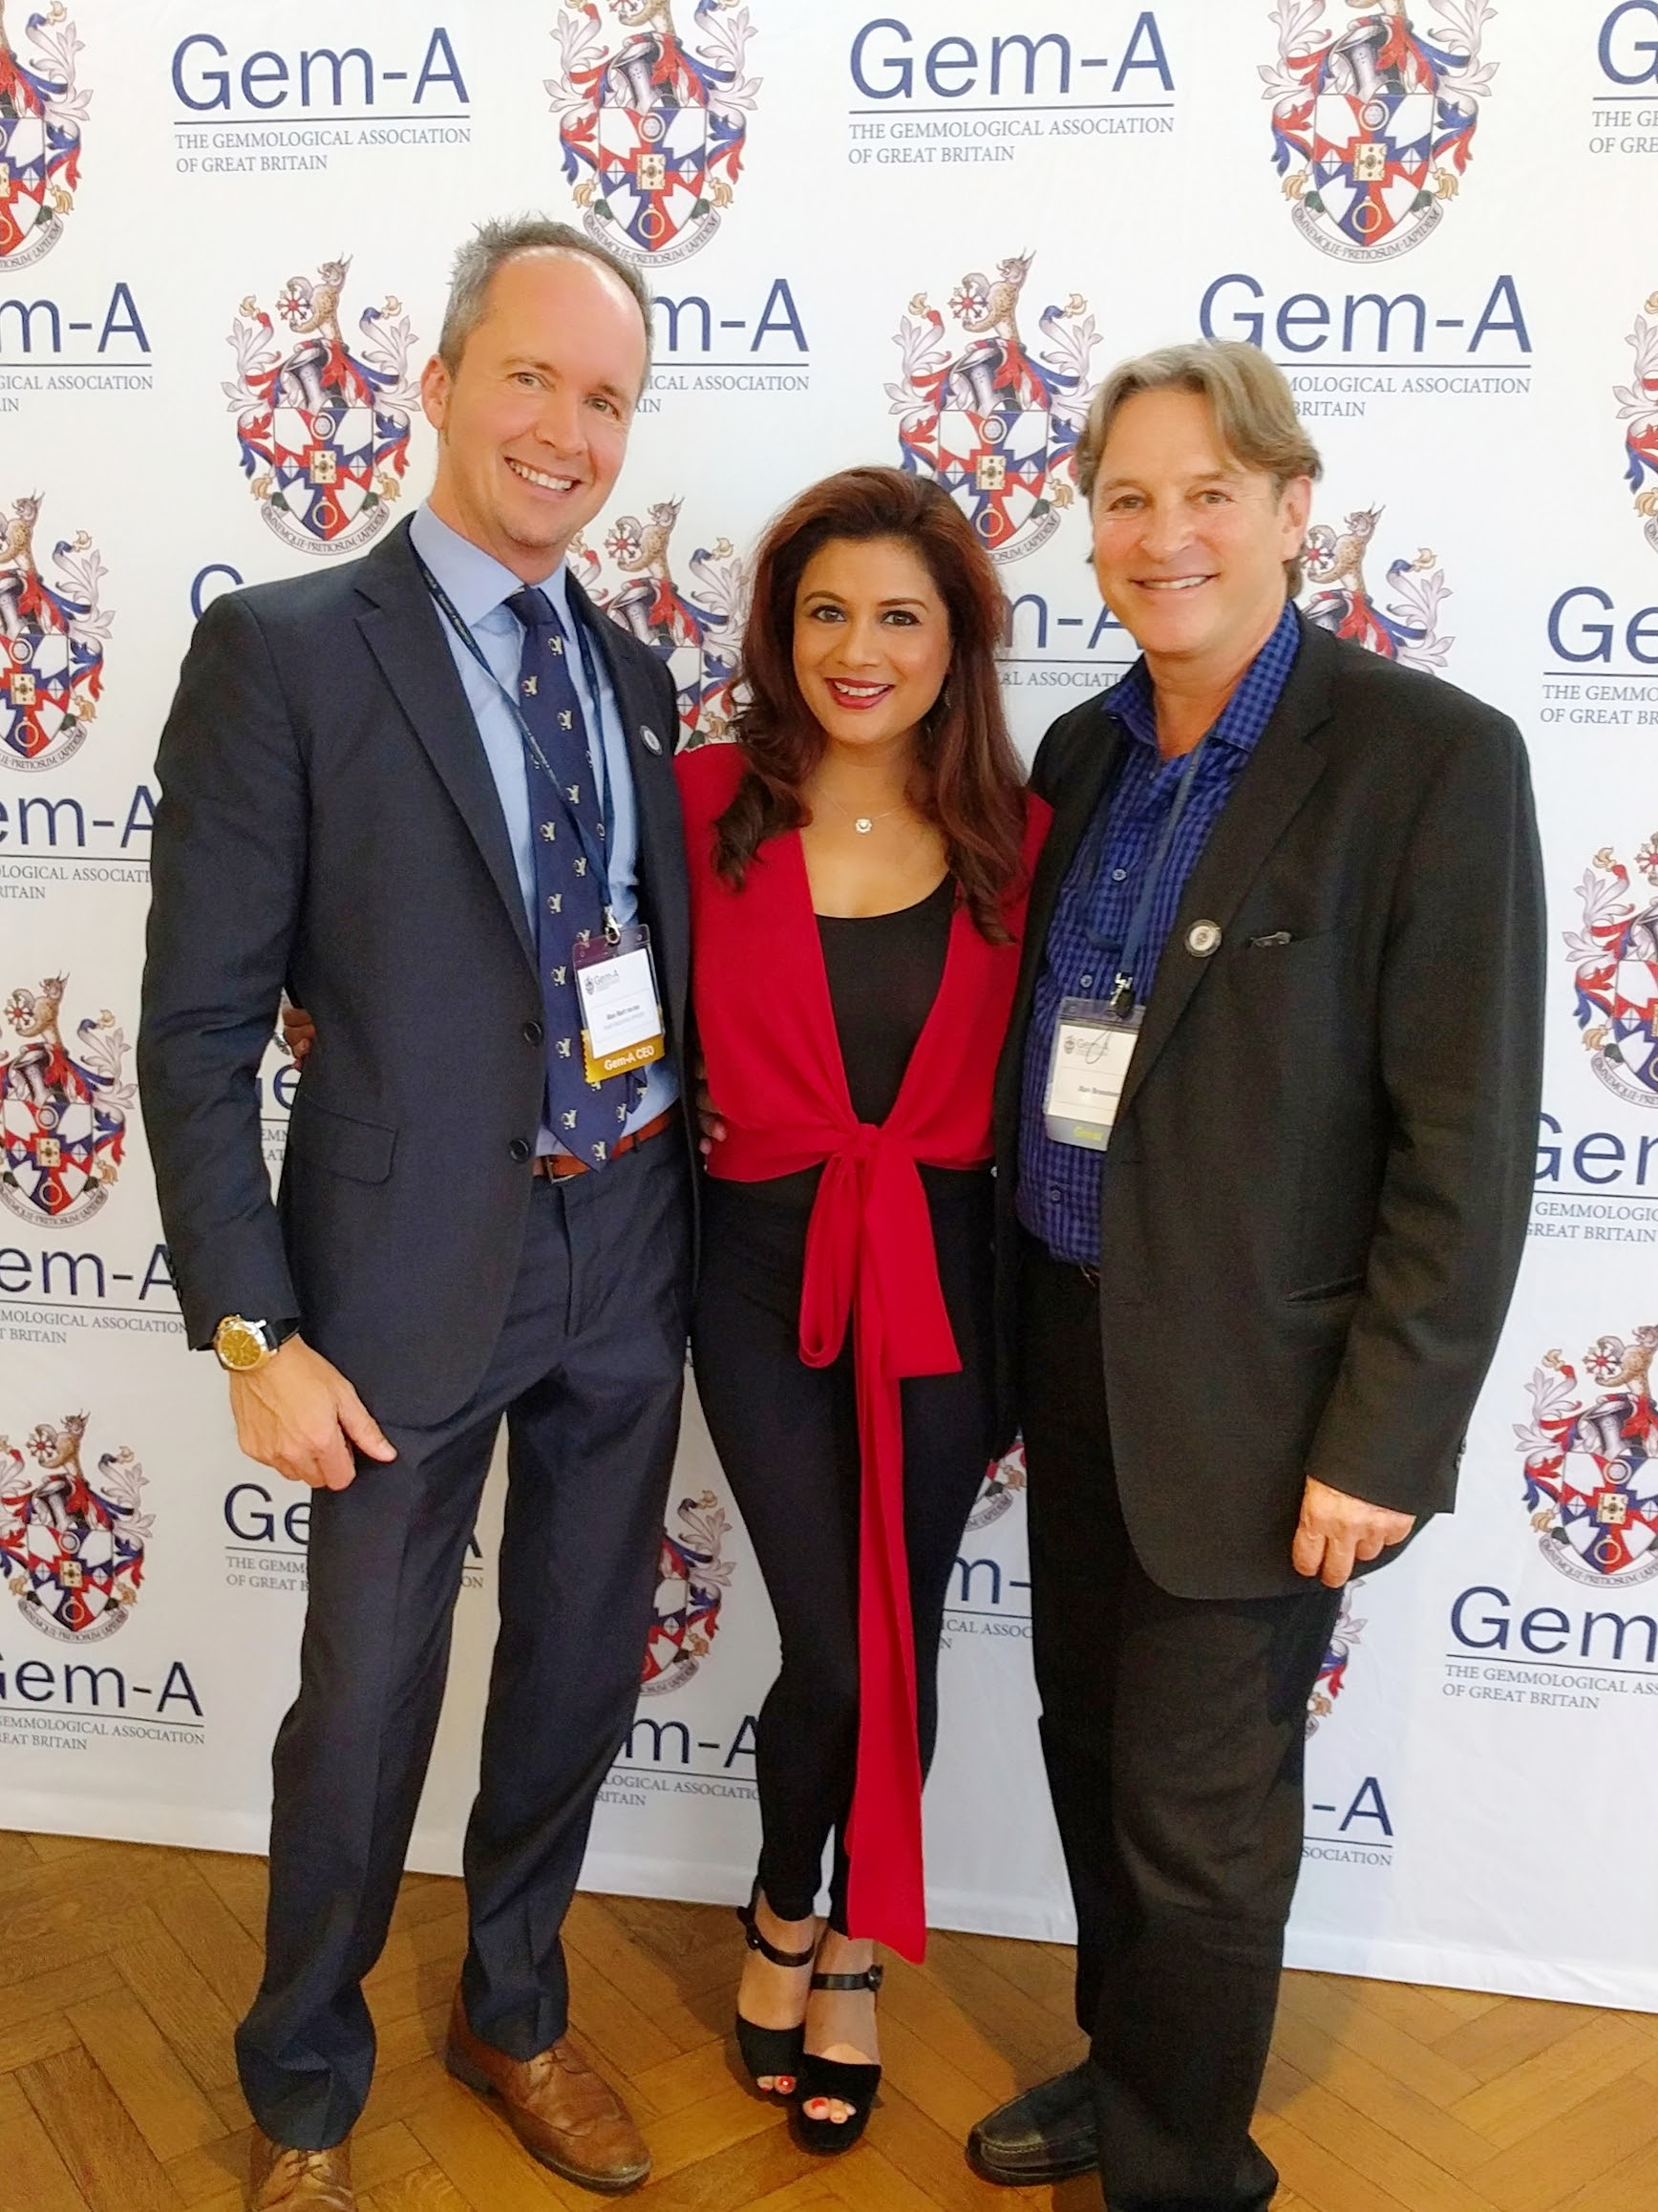 Gem-A CEO, Alan Hart with Reena Ahluwalia and Alan Bronstein. Image: Henry Mesa, Gem-A